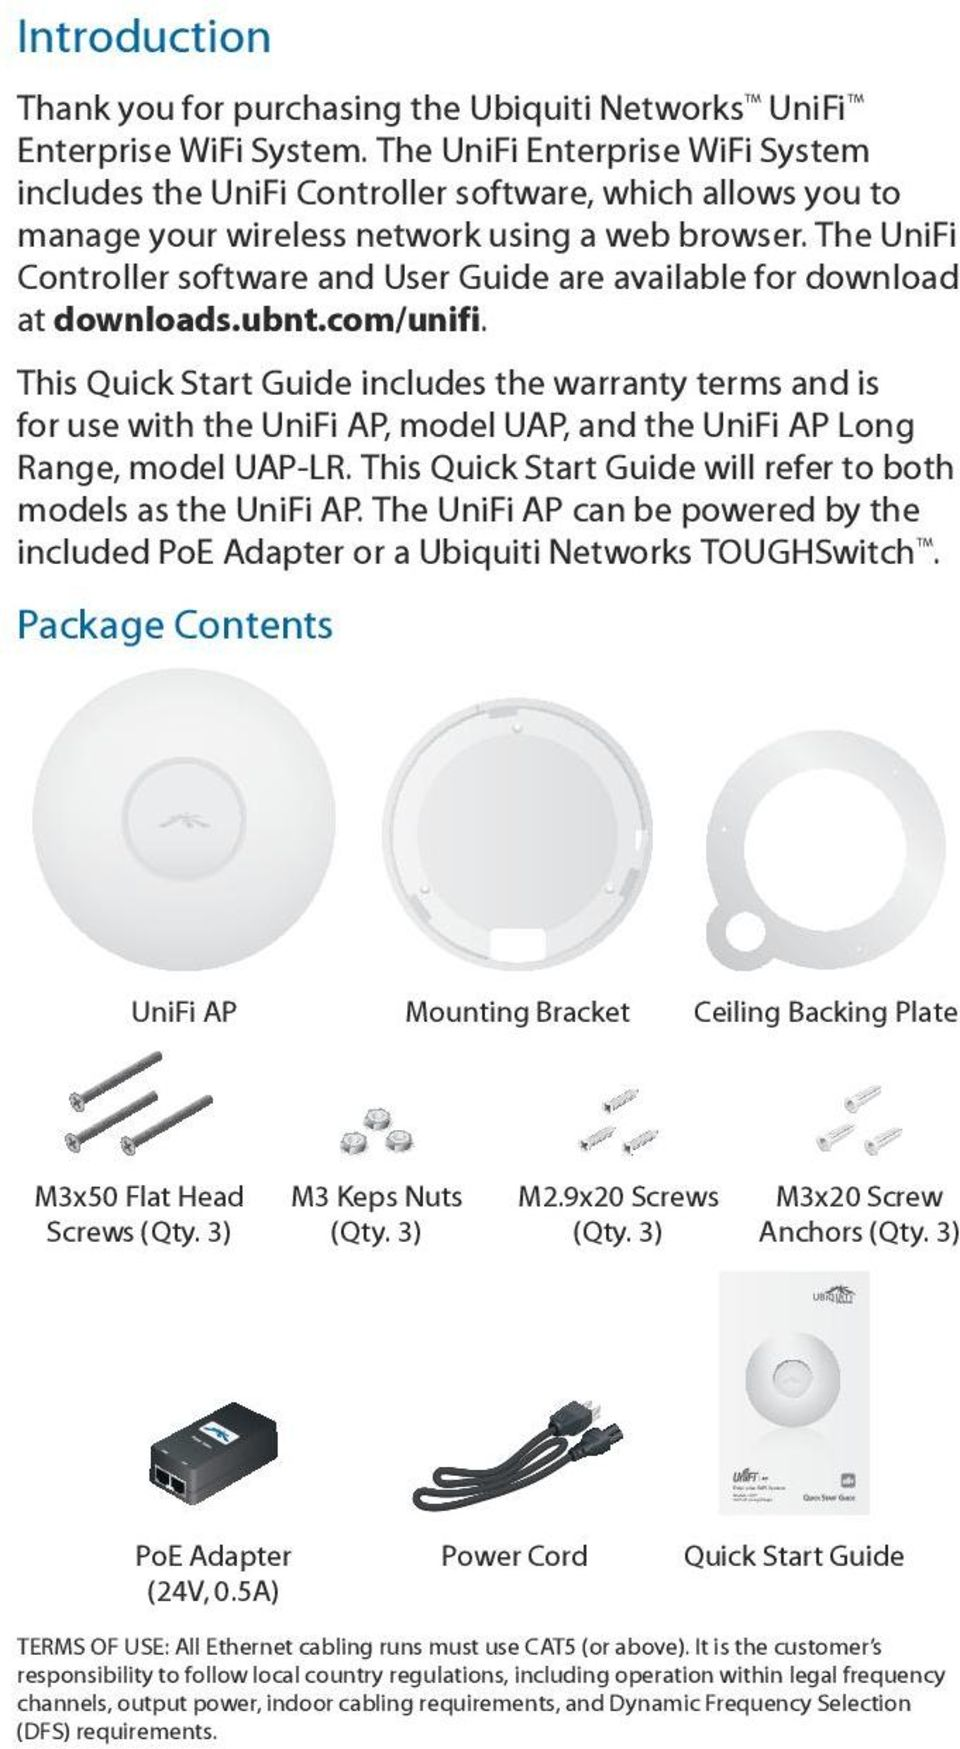 The UniFi Controller software and User Guide are available for download at downloads.ubnt.com/unifi.